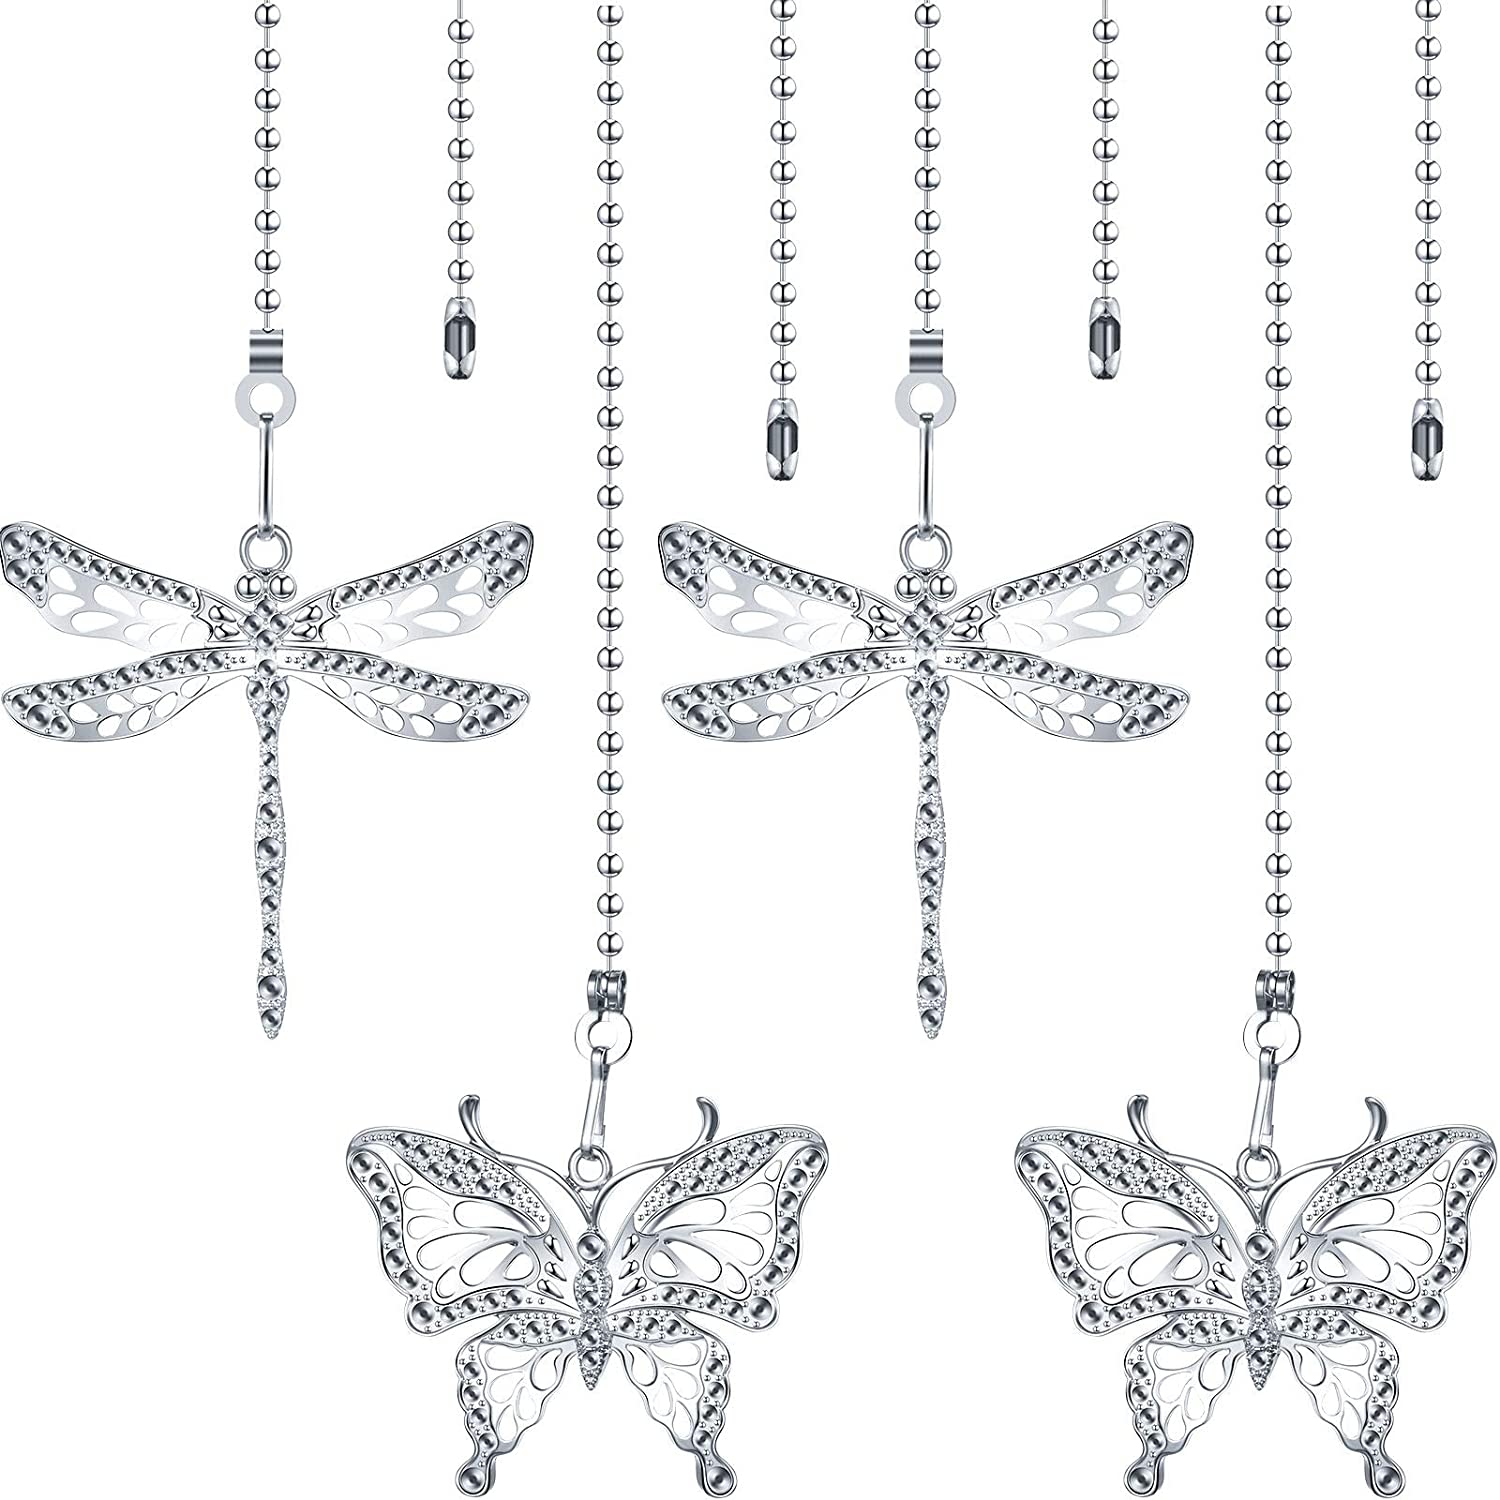 4 Pieces New sales Ceiling Fan Chains Max 78% OFF Pulls Inch Chain Extender 12